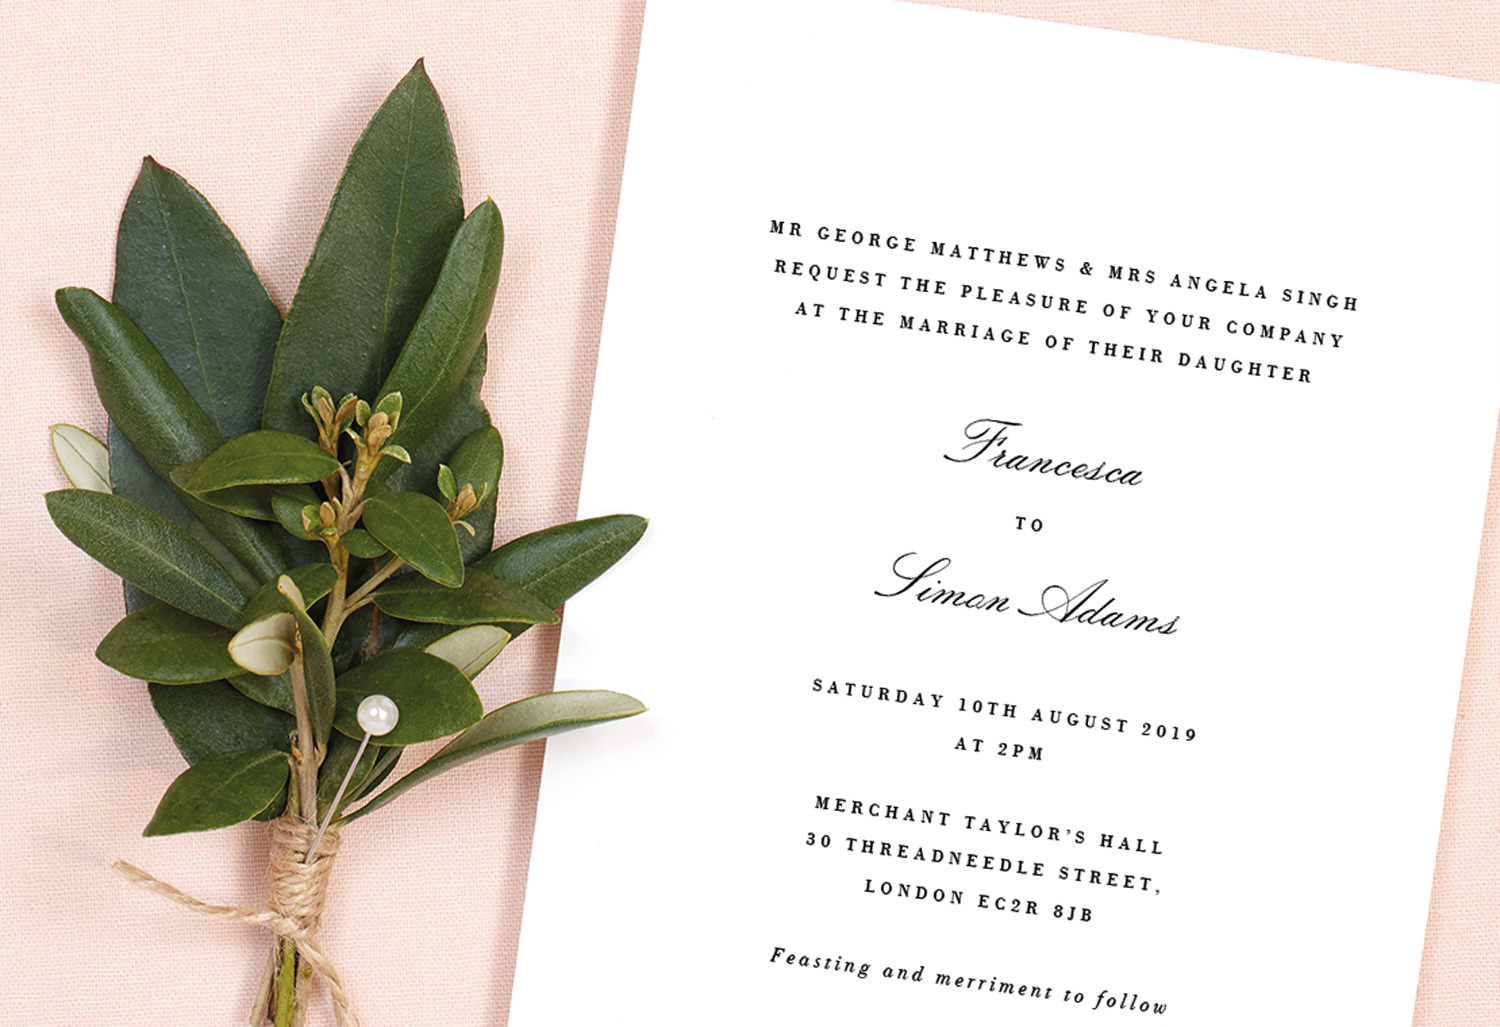 divorced and remarried parents hosting wedding invitation wording